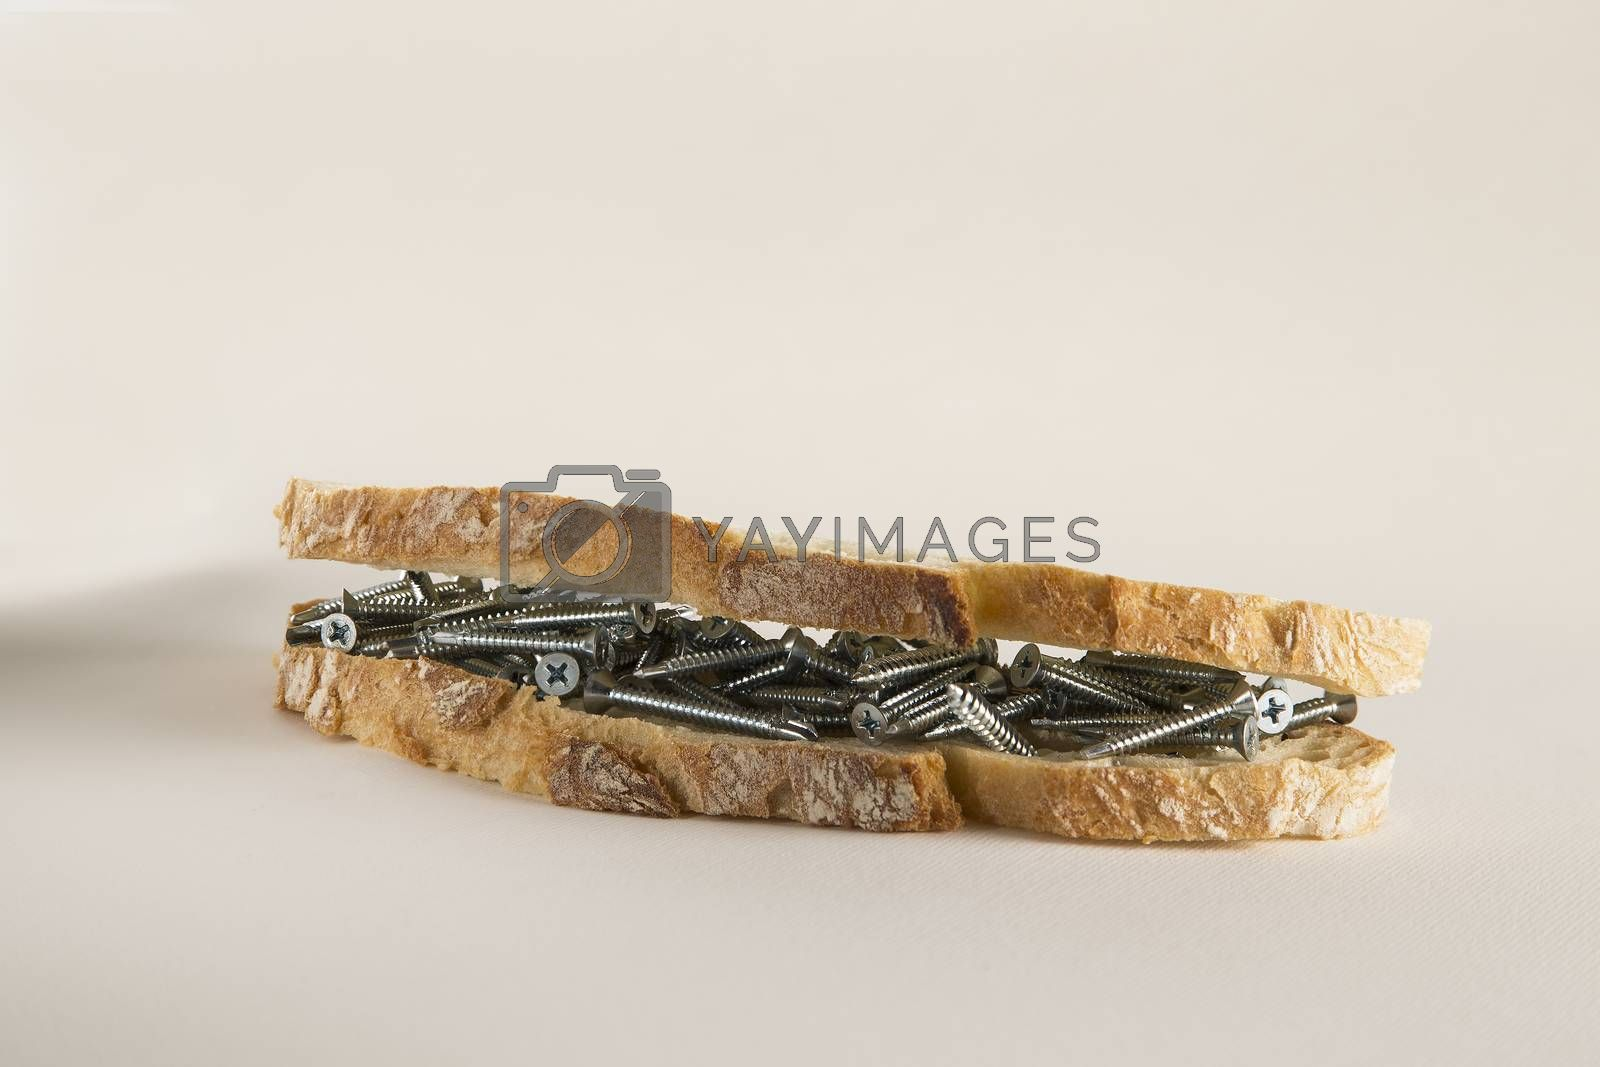 Royalty free image of Sandwich with screws by paocasa